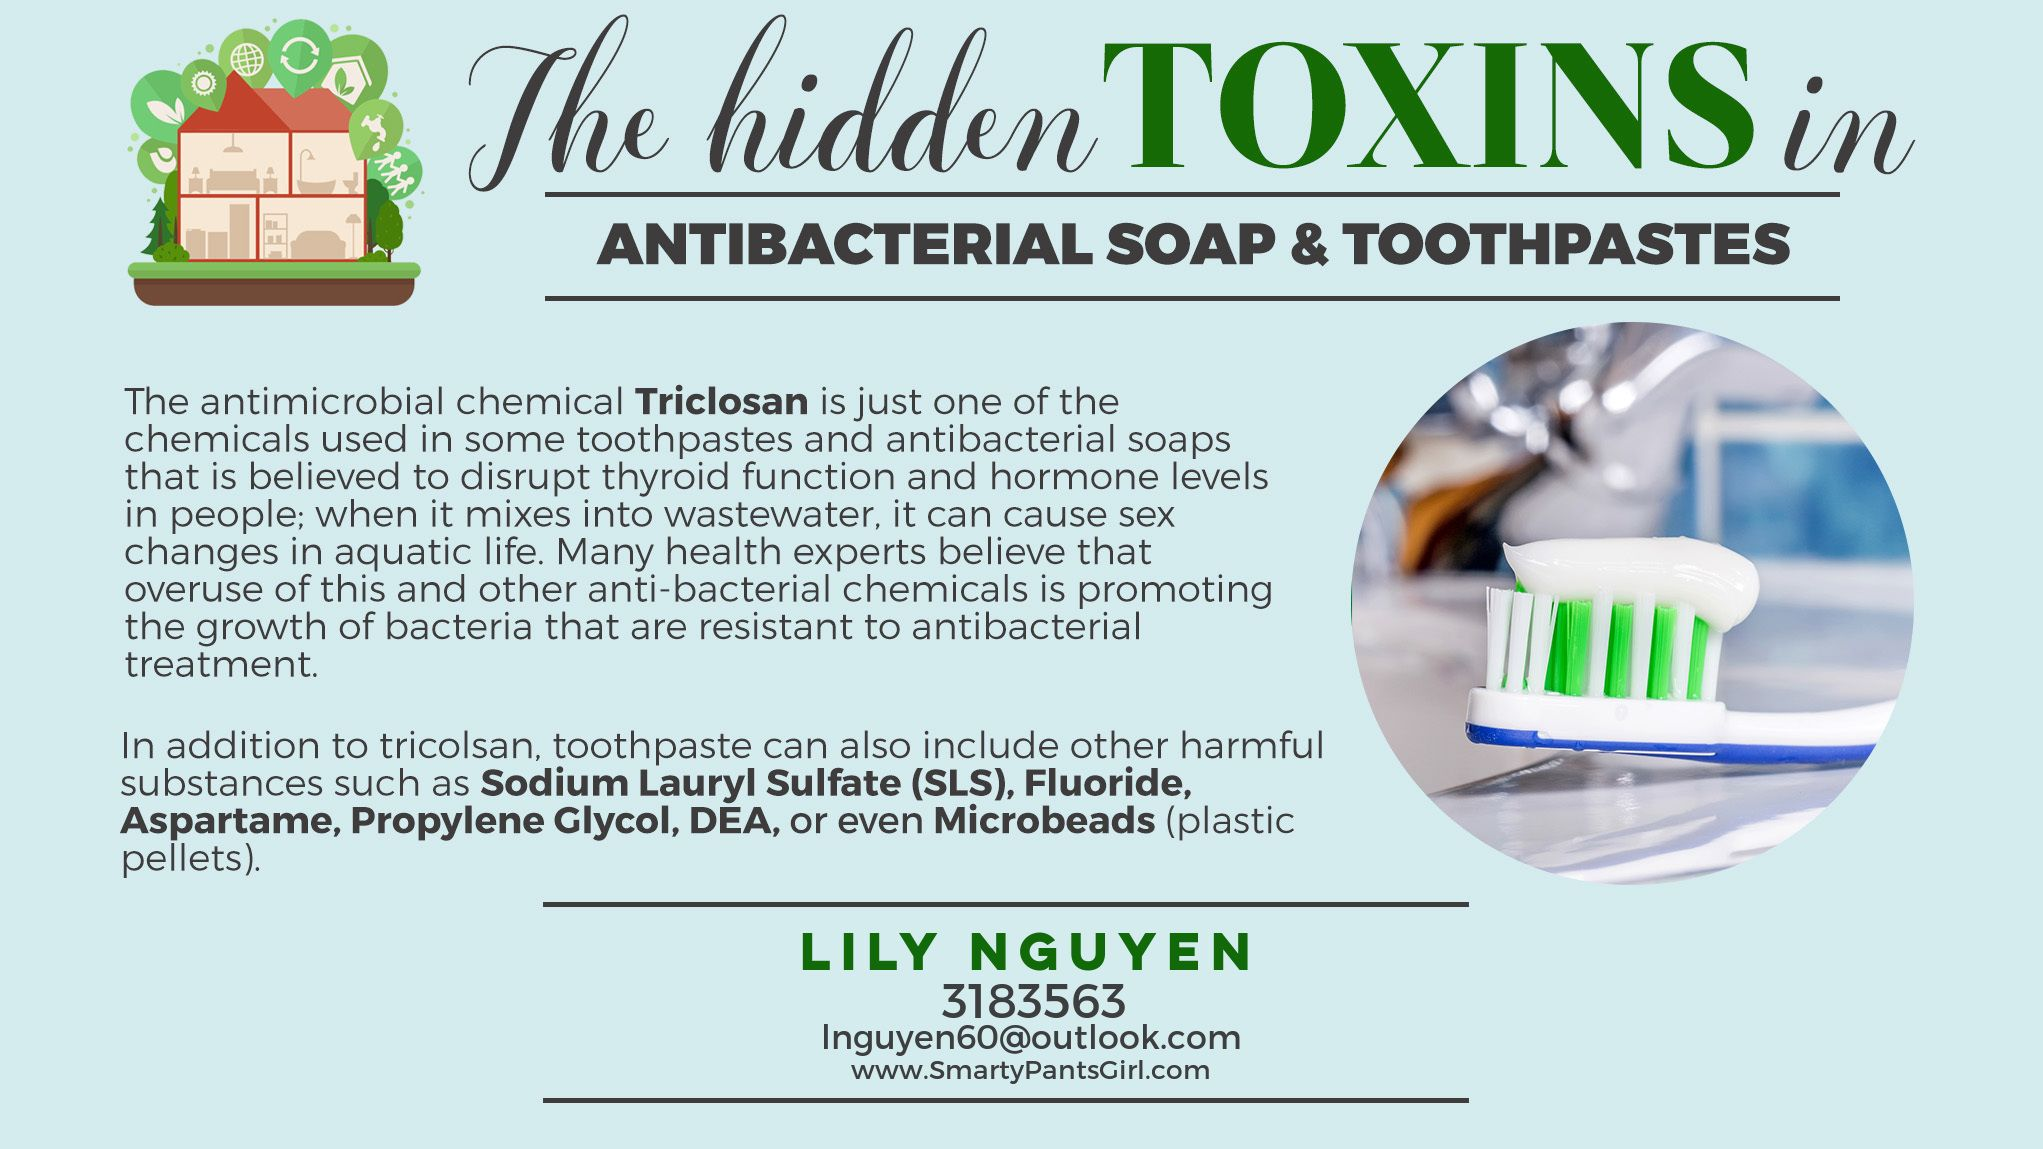 Toxin Free Family Smarty Pants Girl Antibacterial soap